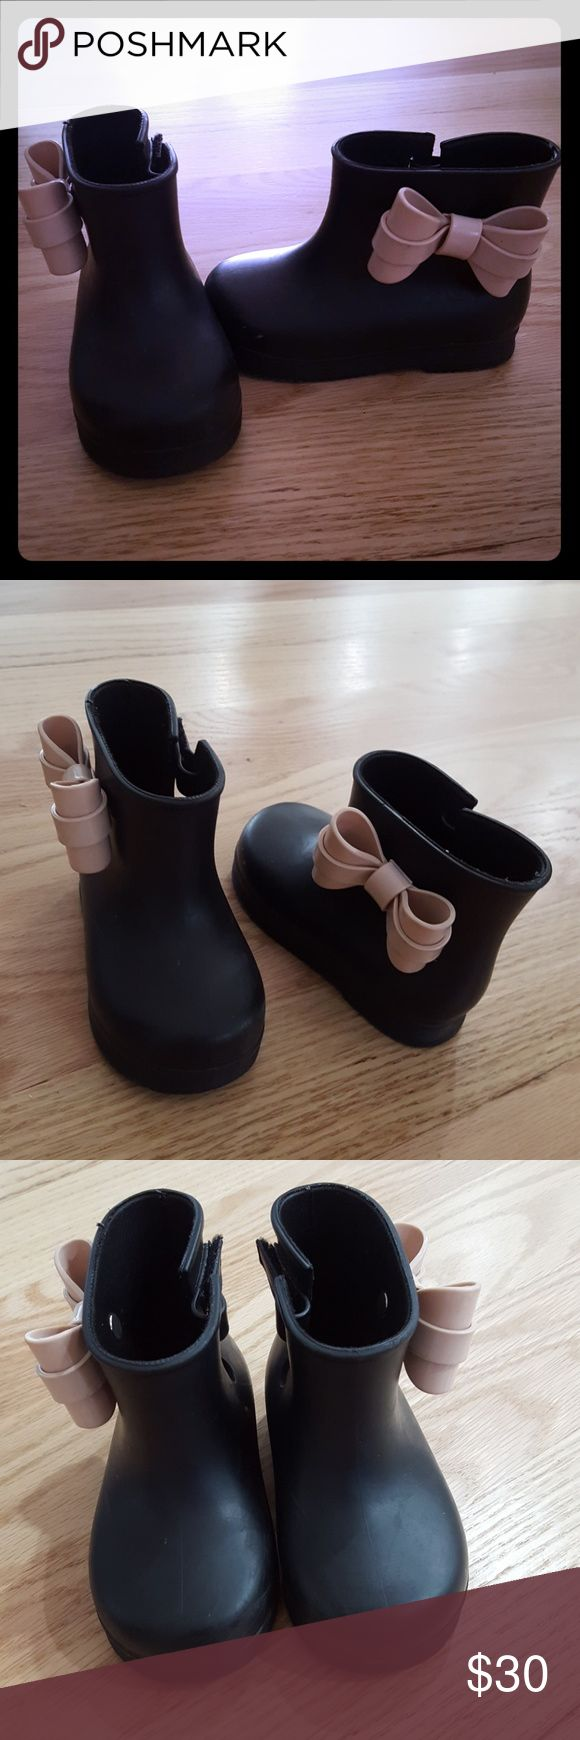 Mini melissa boots with pink bow size 7/8 Mini Melissa black boots with pink bows on side, very comfortable and great for all season. My daughter loves it but outgrow it already. In great condition! Mini Melissa Shoes Ankle Boots & Booties